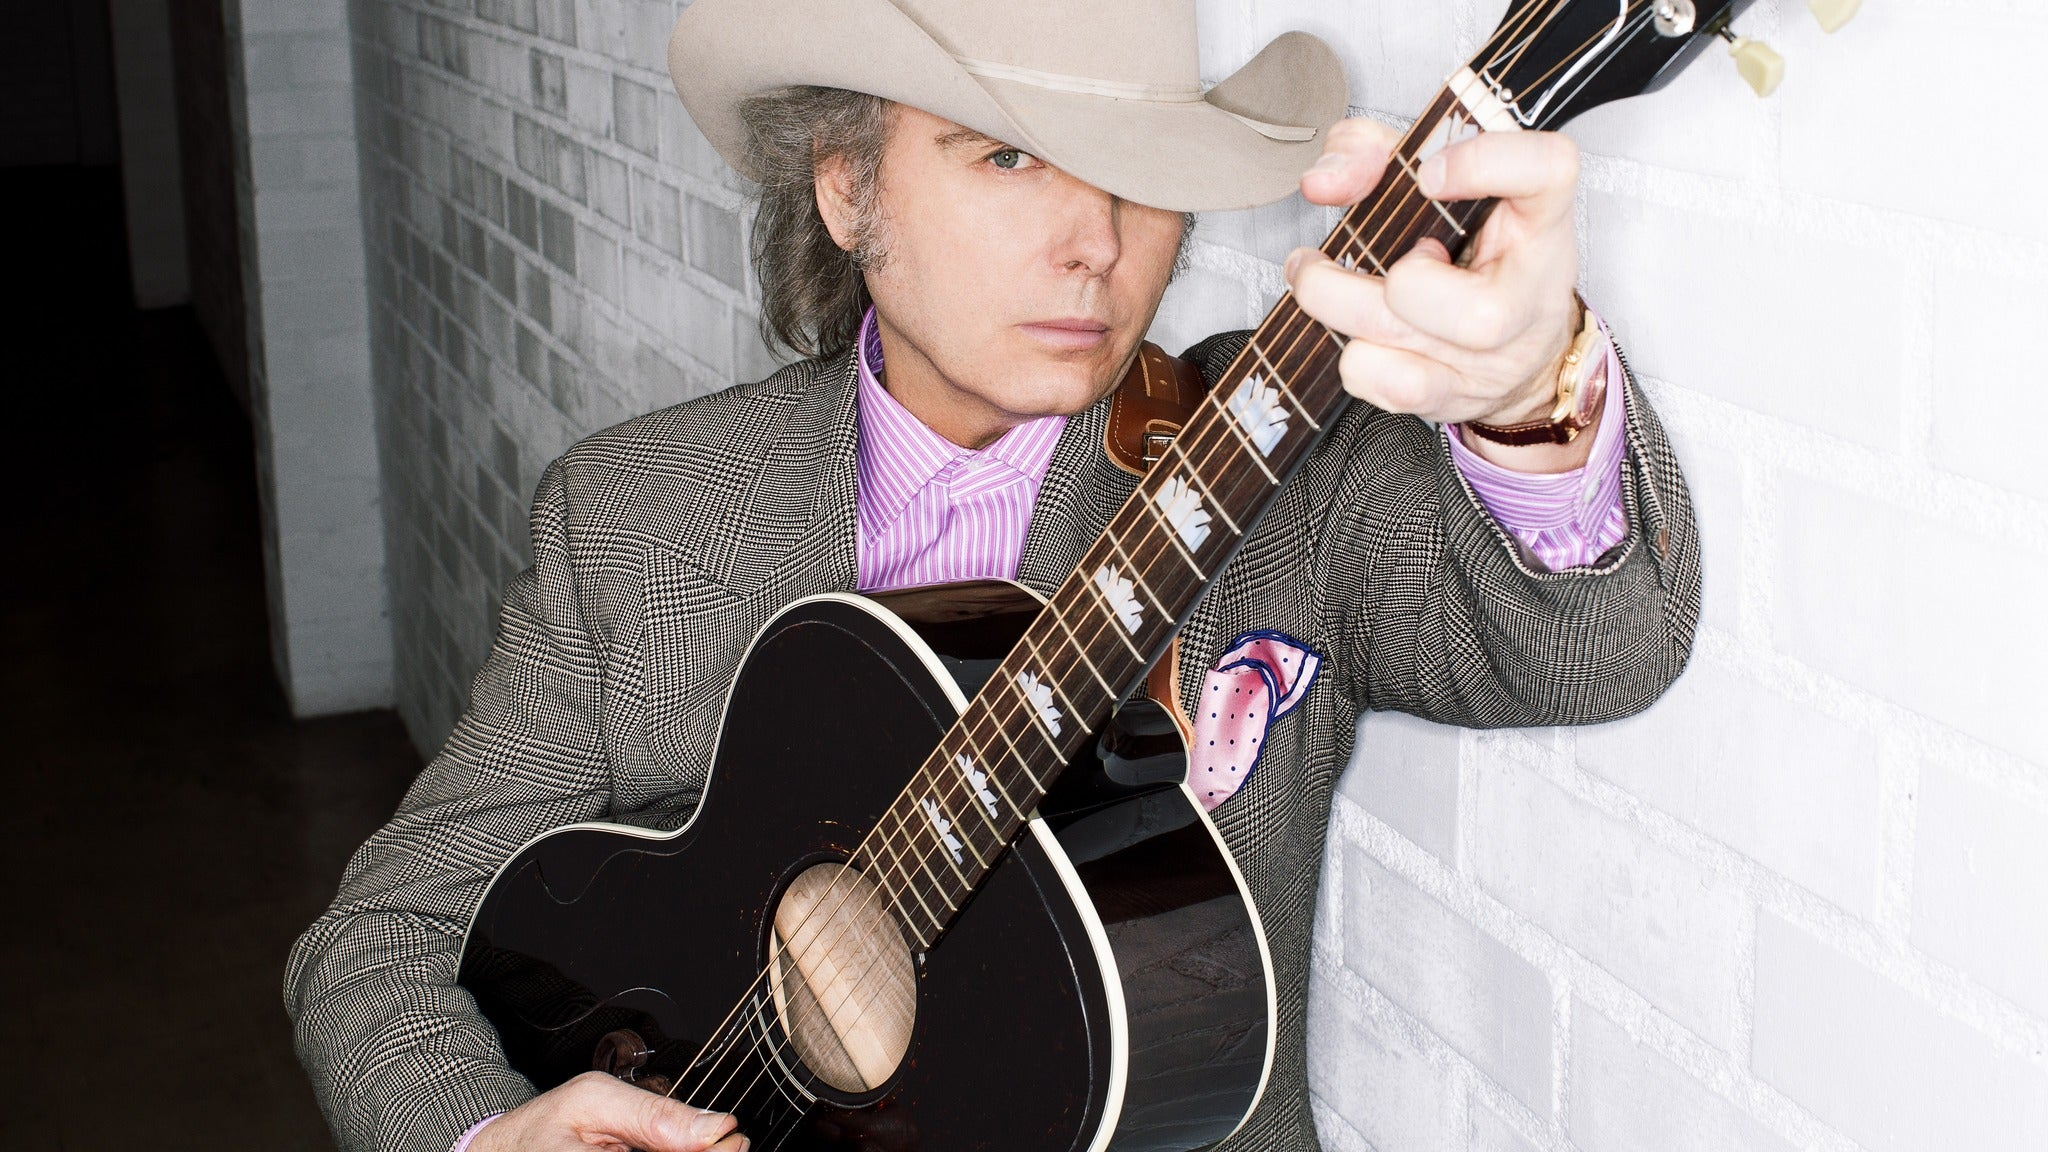 Dwight Yoakam at Macon City Auditorium